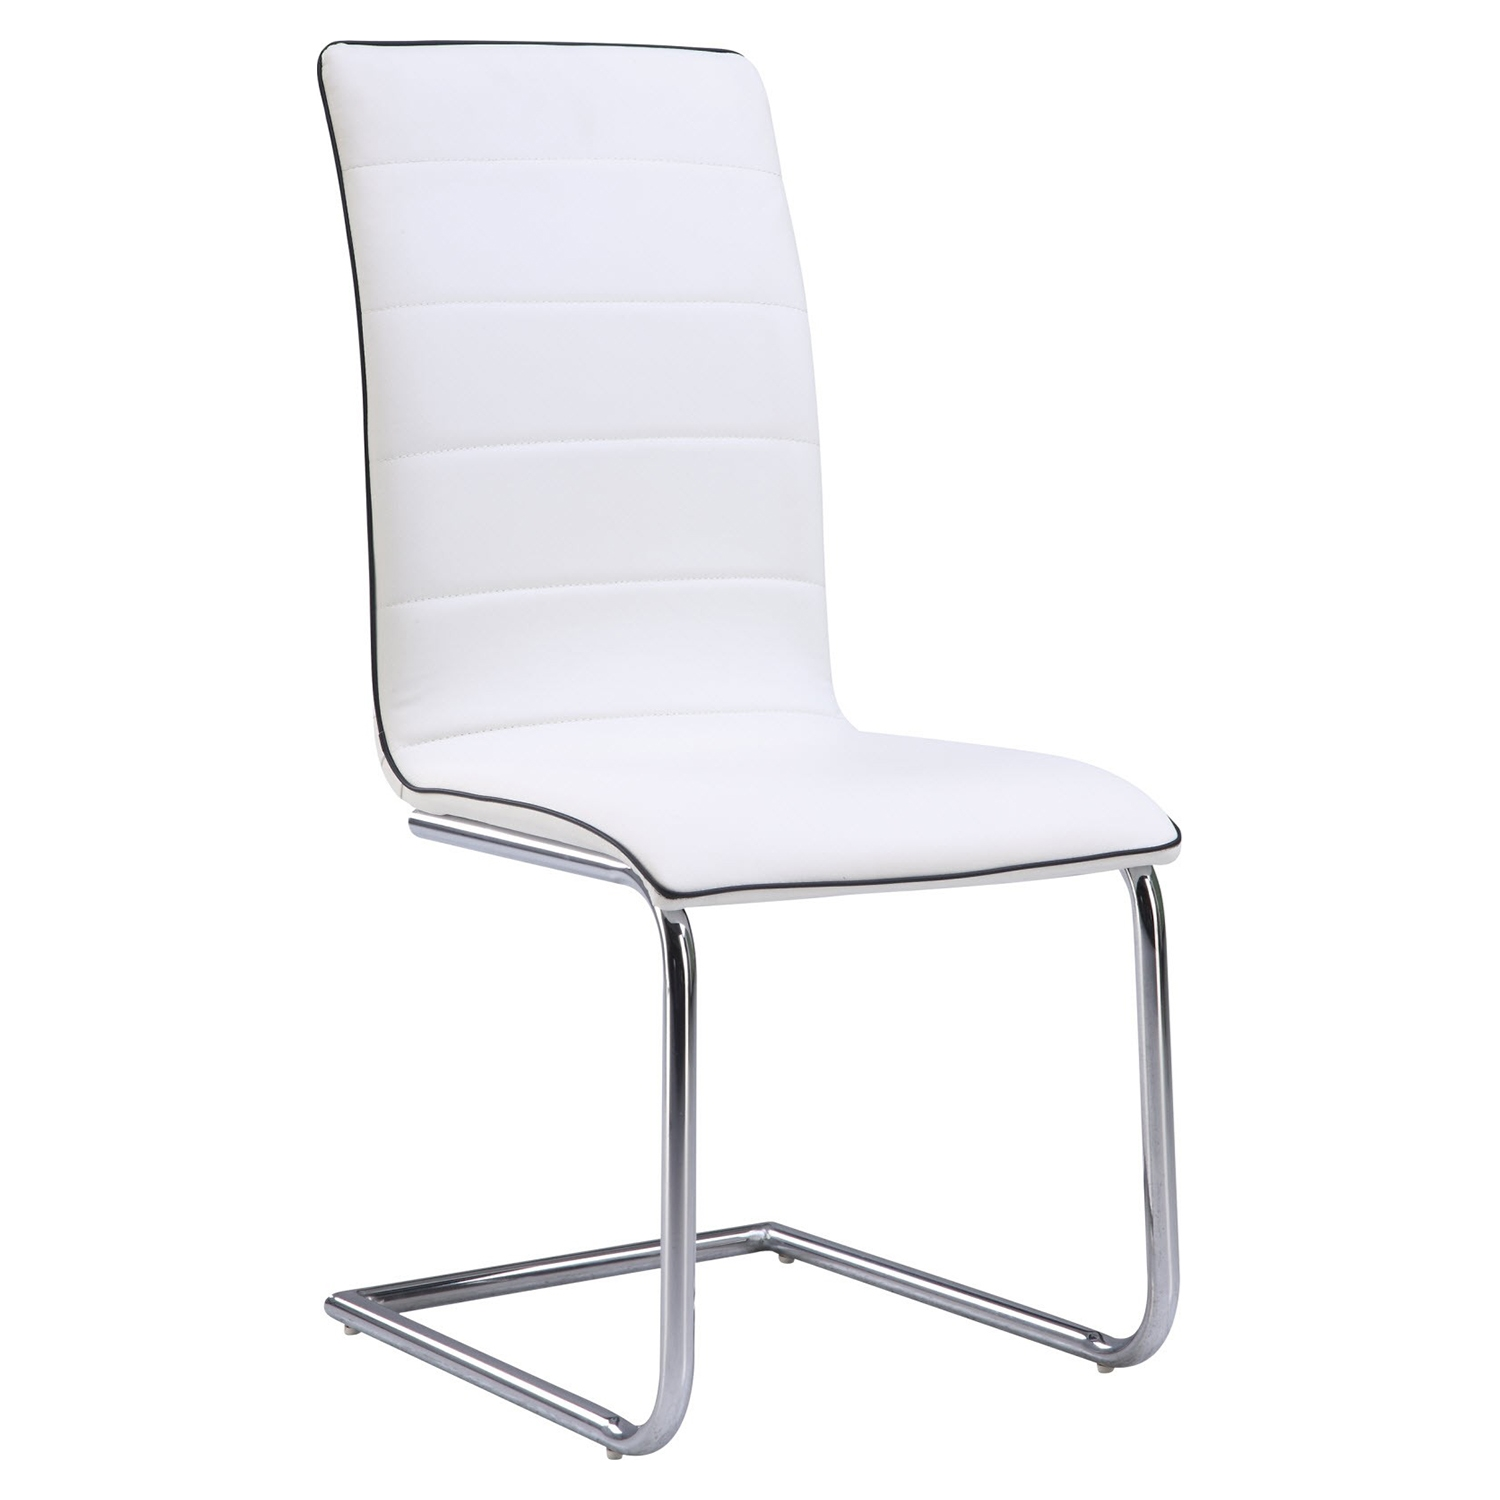 Dining Side Chair White Upholstery Chrome Legs DCG Stores : d490dc wh m from www.dcgstores.com size 500 x 500 jpeg 40kB